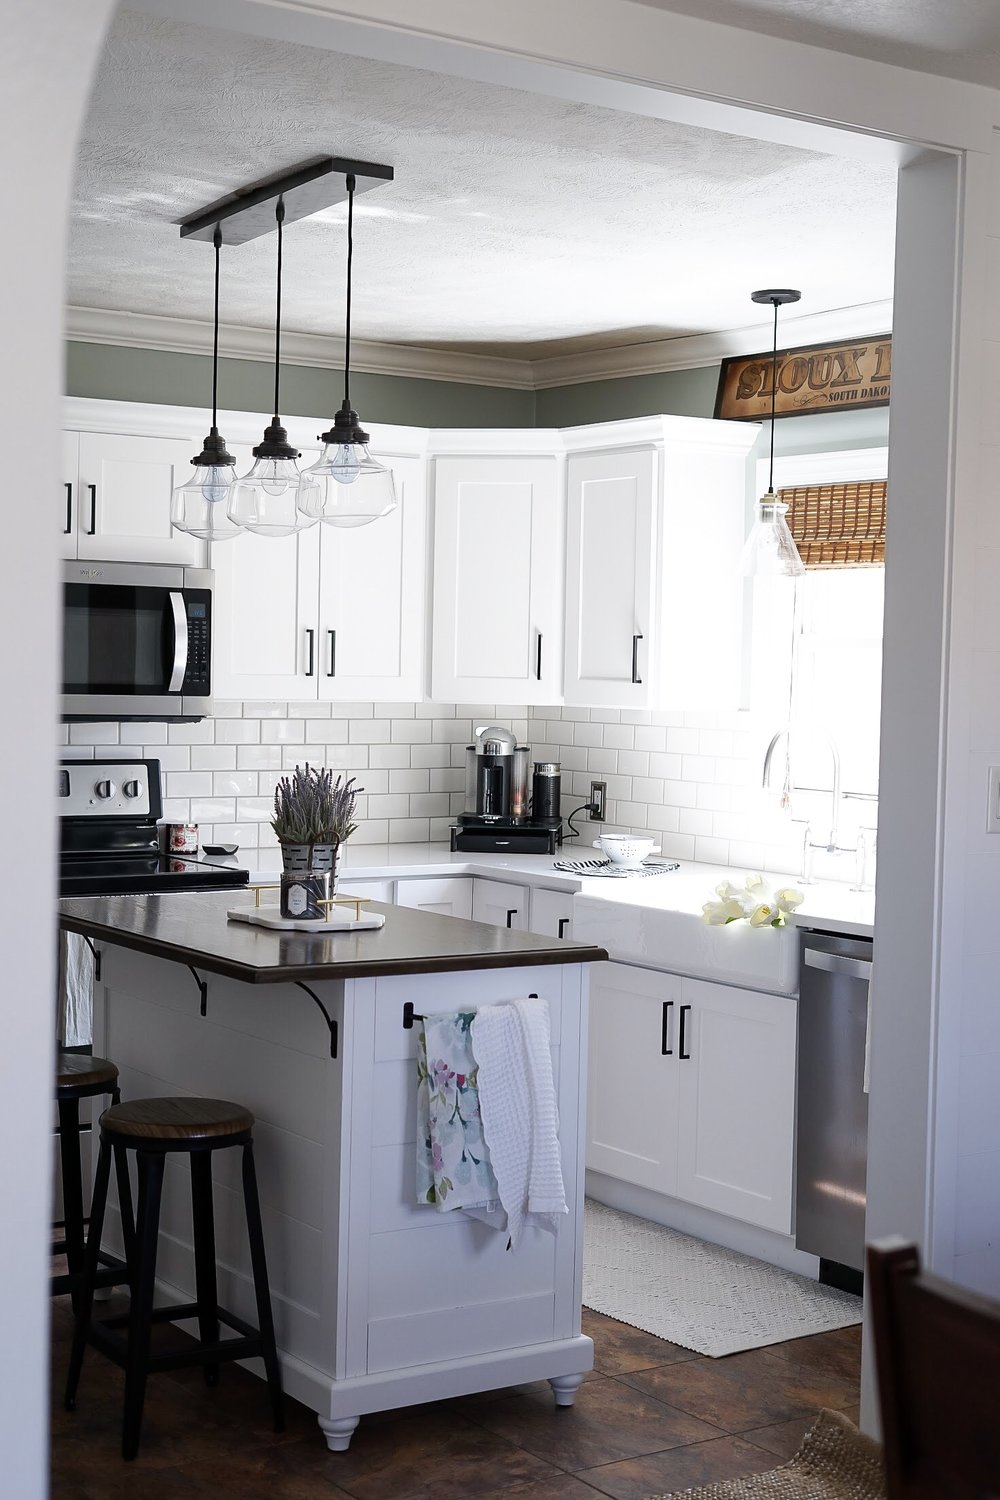 Kitchen Refresh of Sioux Falls completed Midwest in Style blogger Maren Jensen's kitchen cabinet makeover in just 2 days!